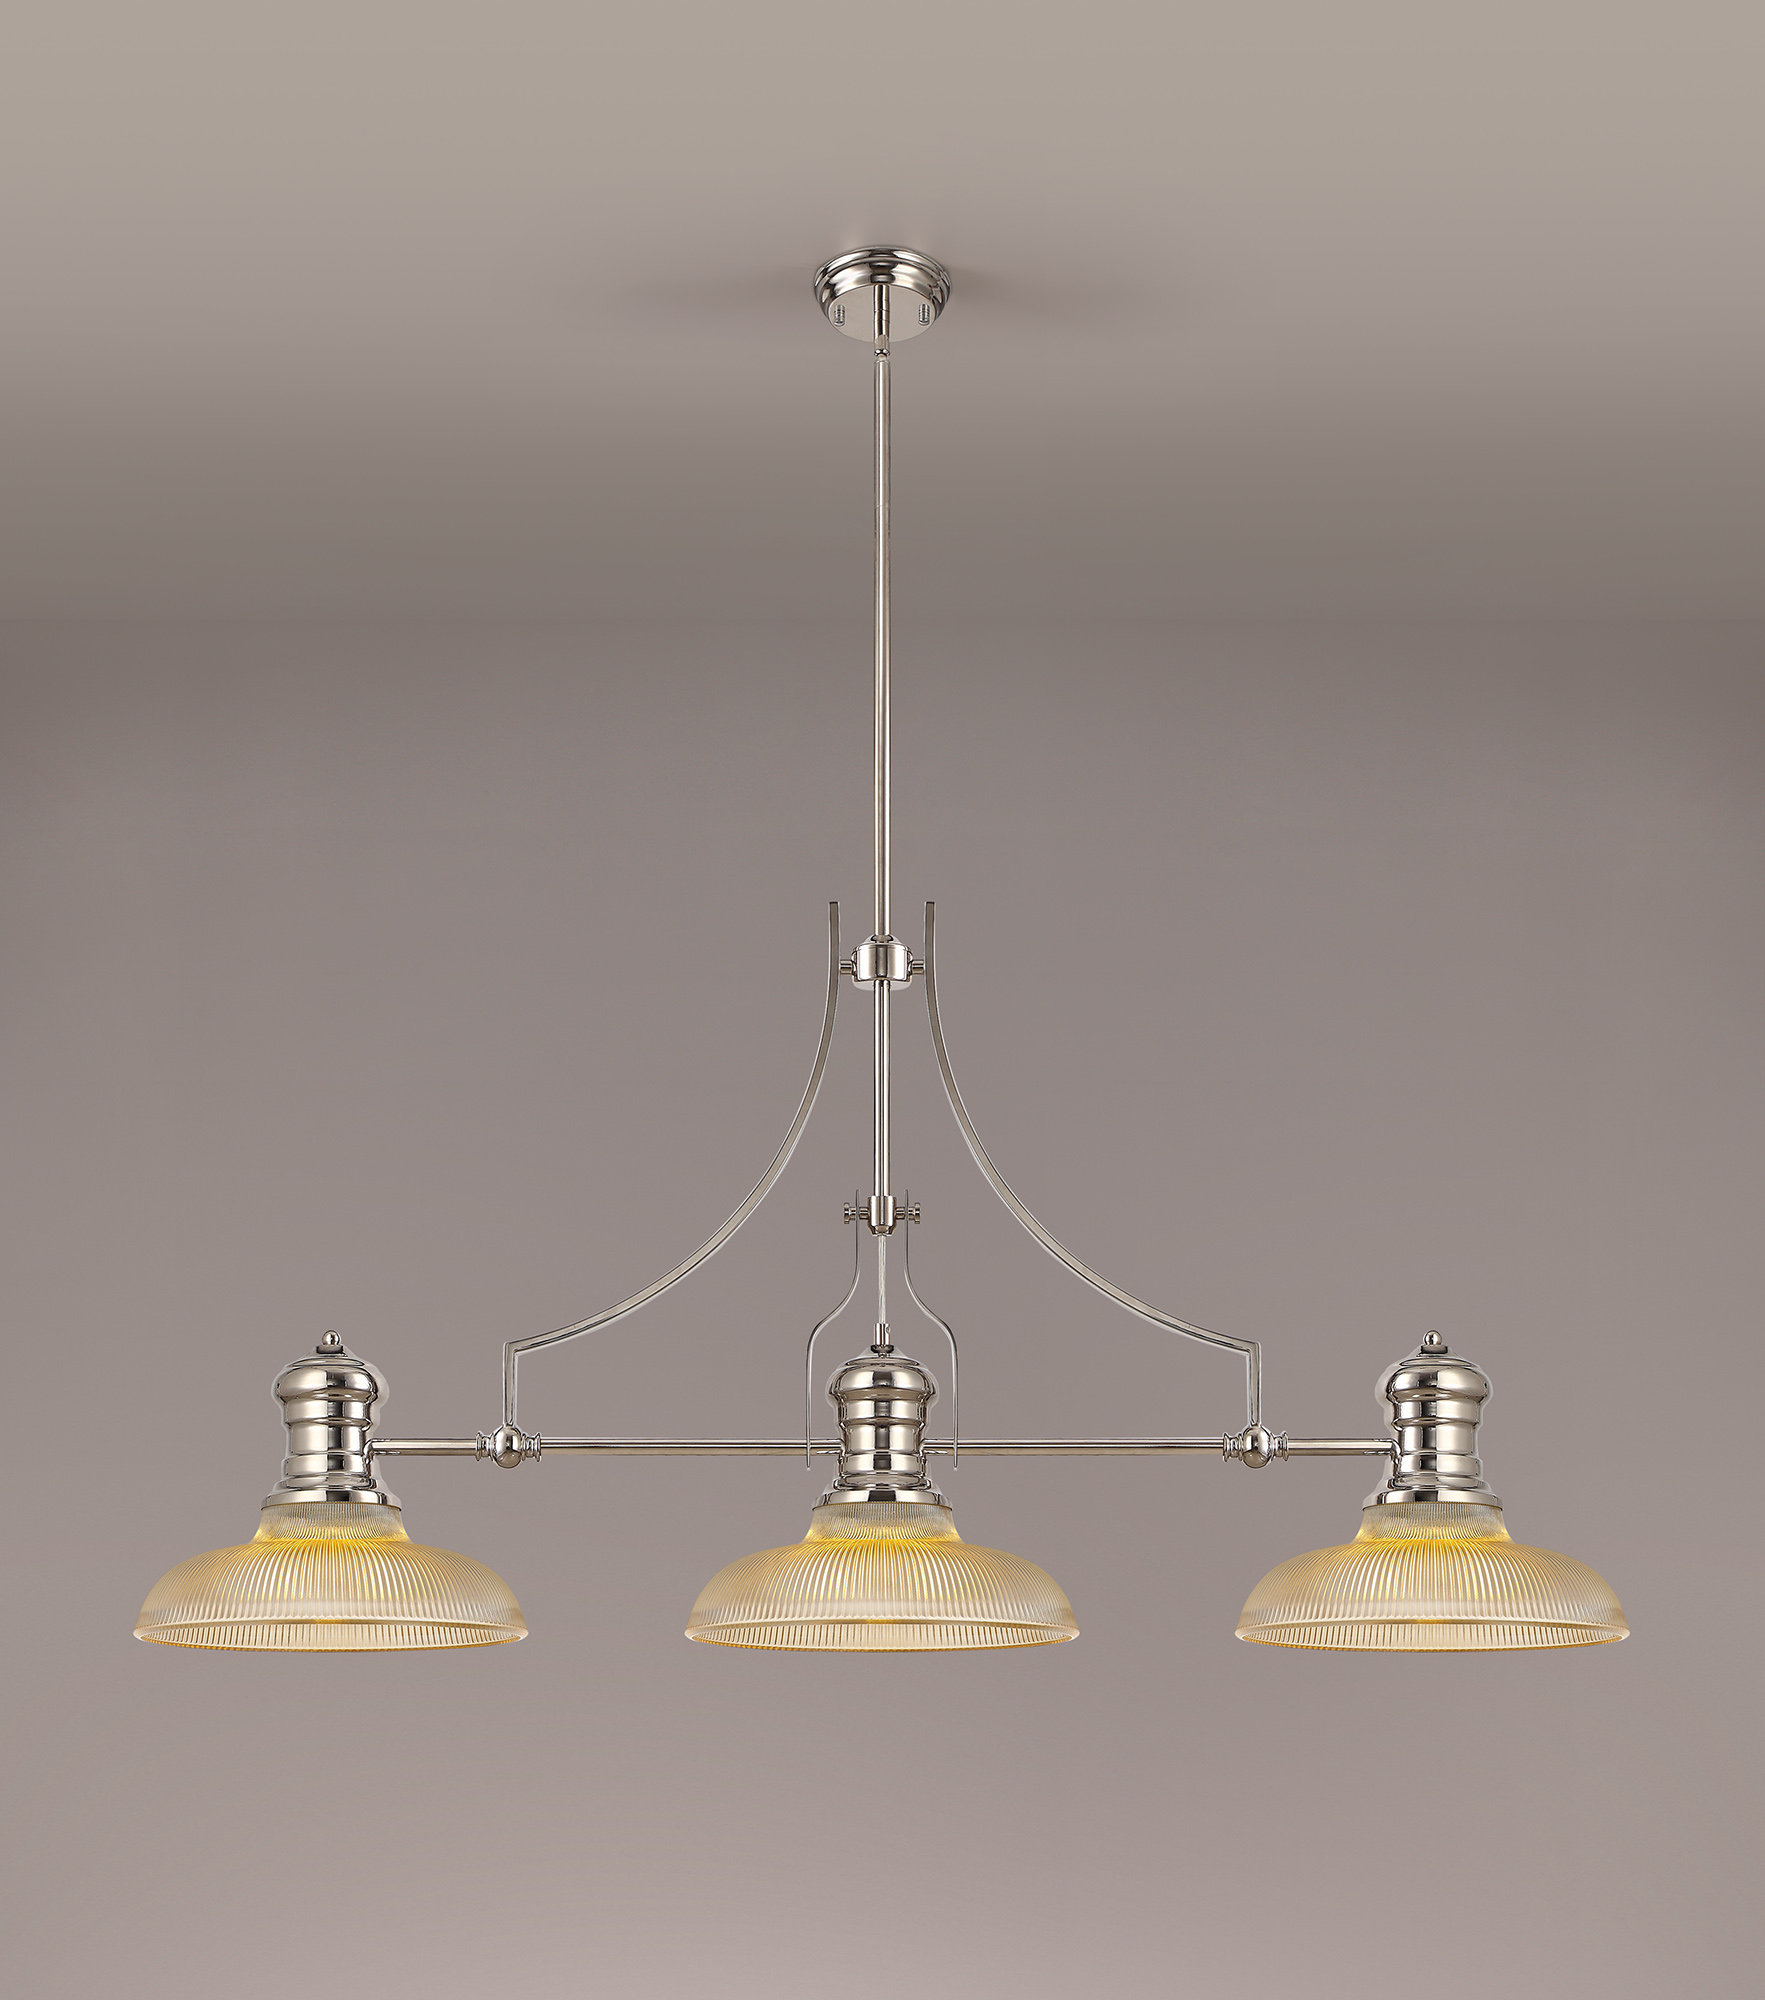 3 Light Linear Pendant E27 With 30cm Round Glass Shade